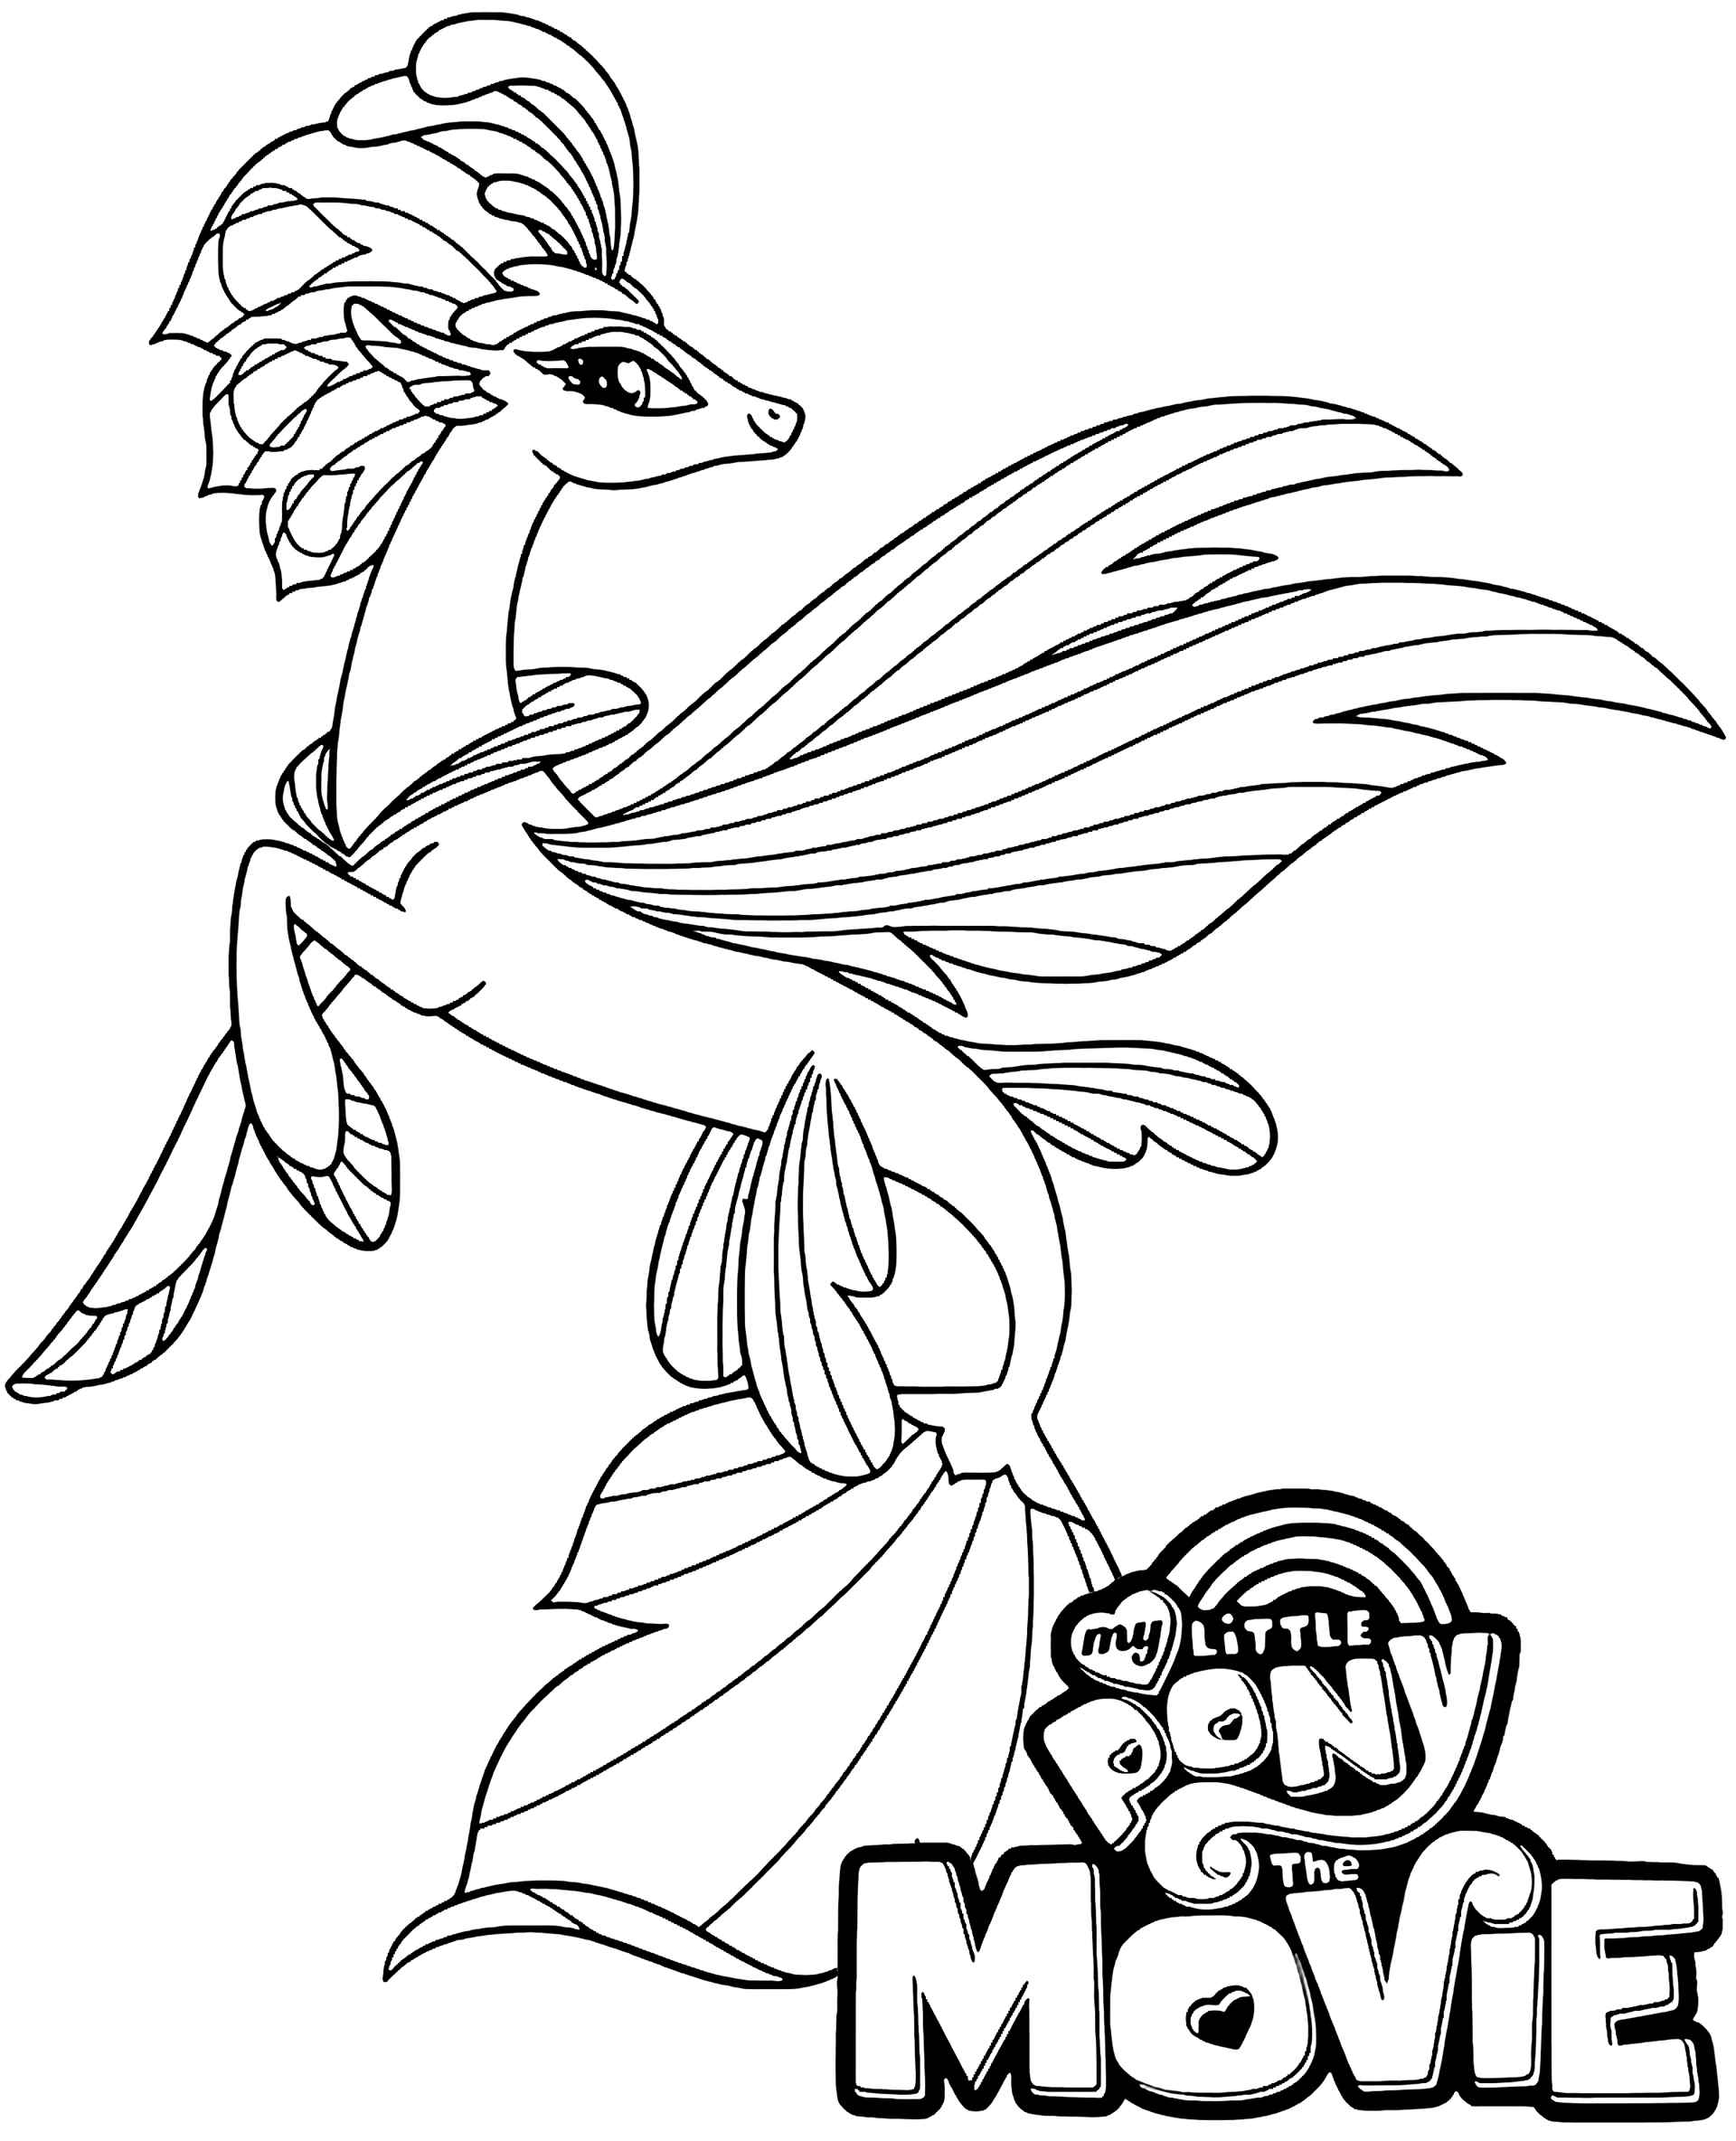 Beautiful Pony Mermaid Queen Novo With Logo Coloring Page